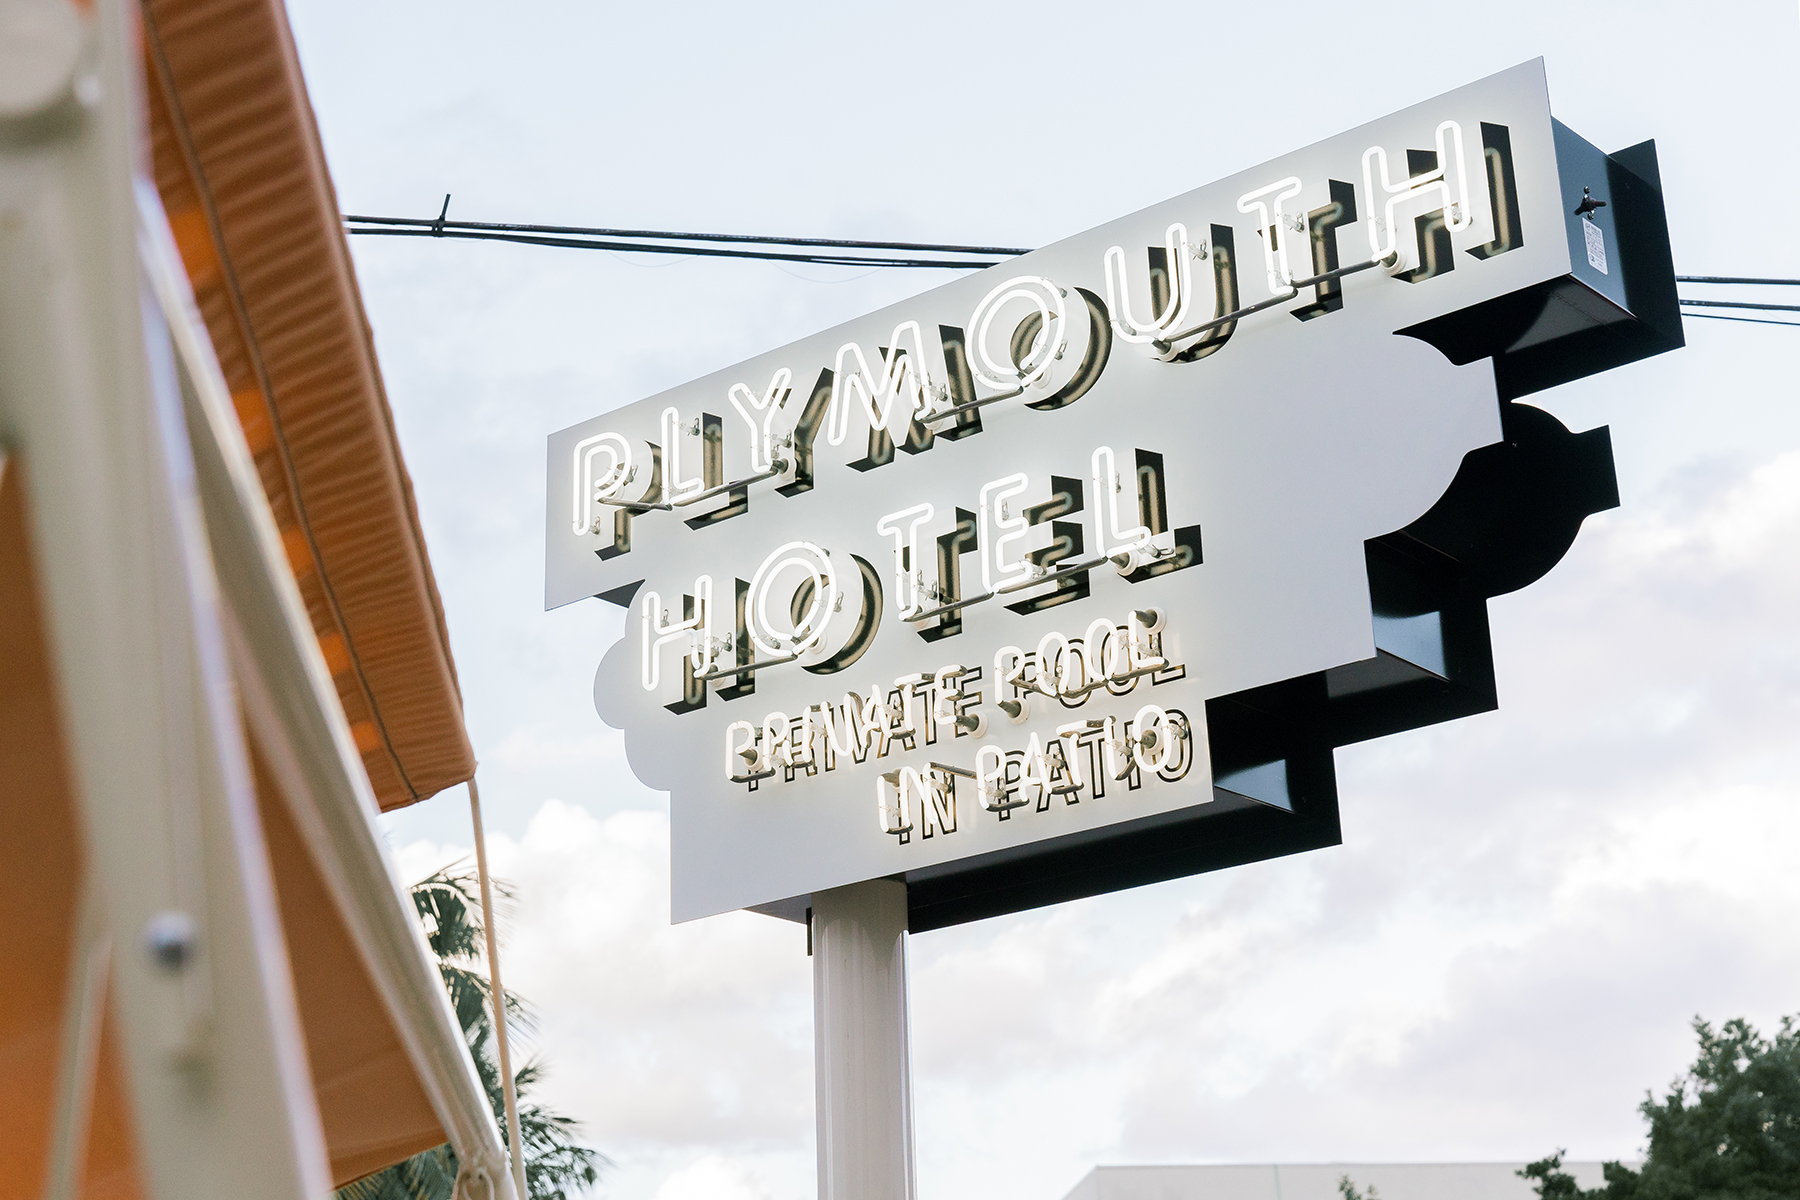 Sign of the The Plymouth Hotel in Miami Beach